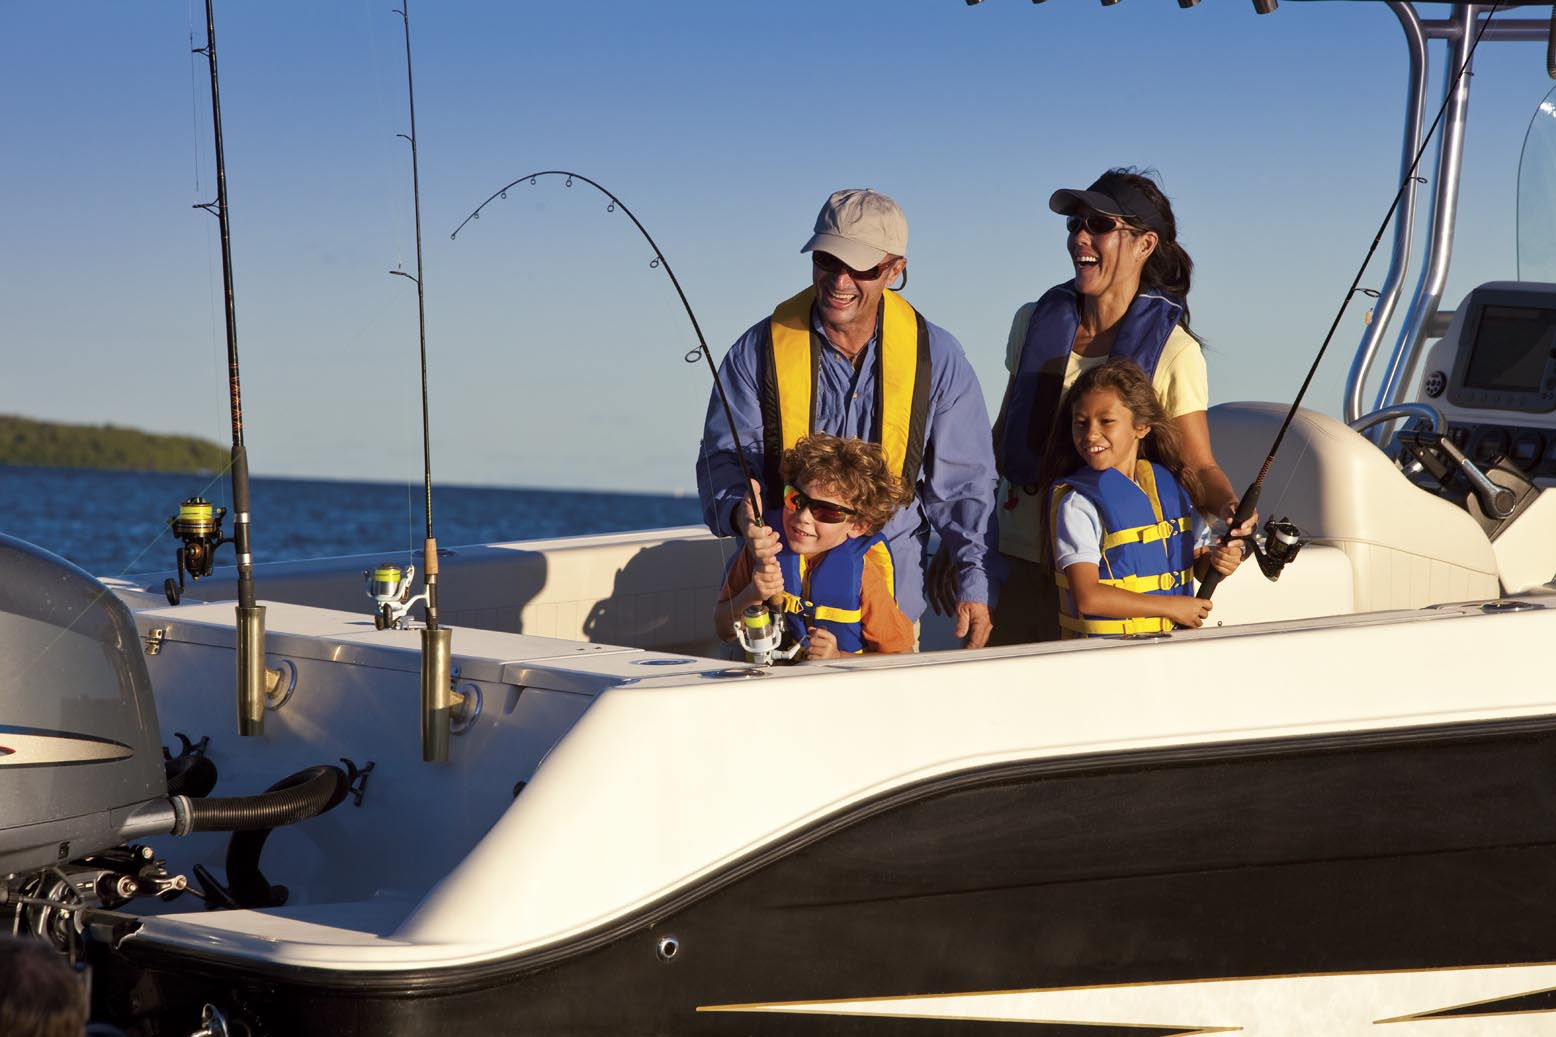 Carlos correa partners with recreational boating fishing for Best boat for fishing and family fun